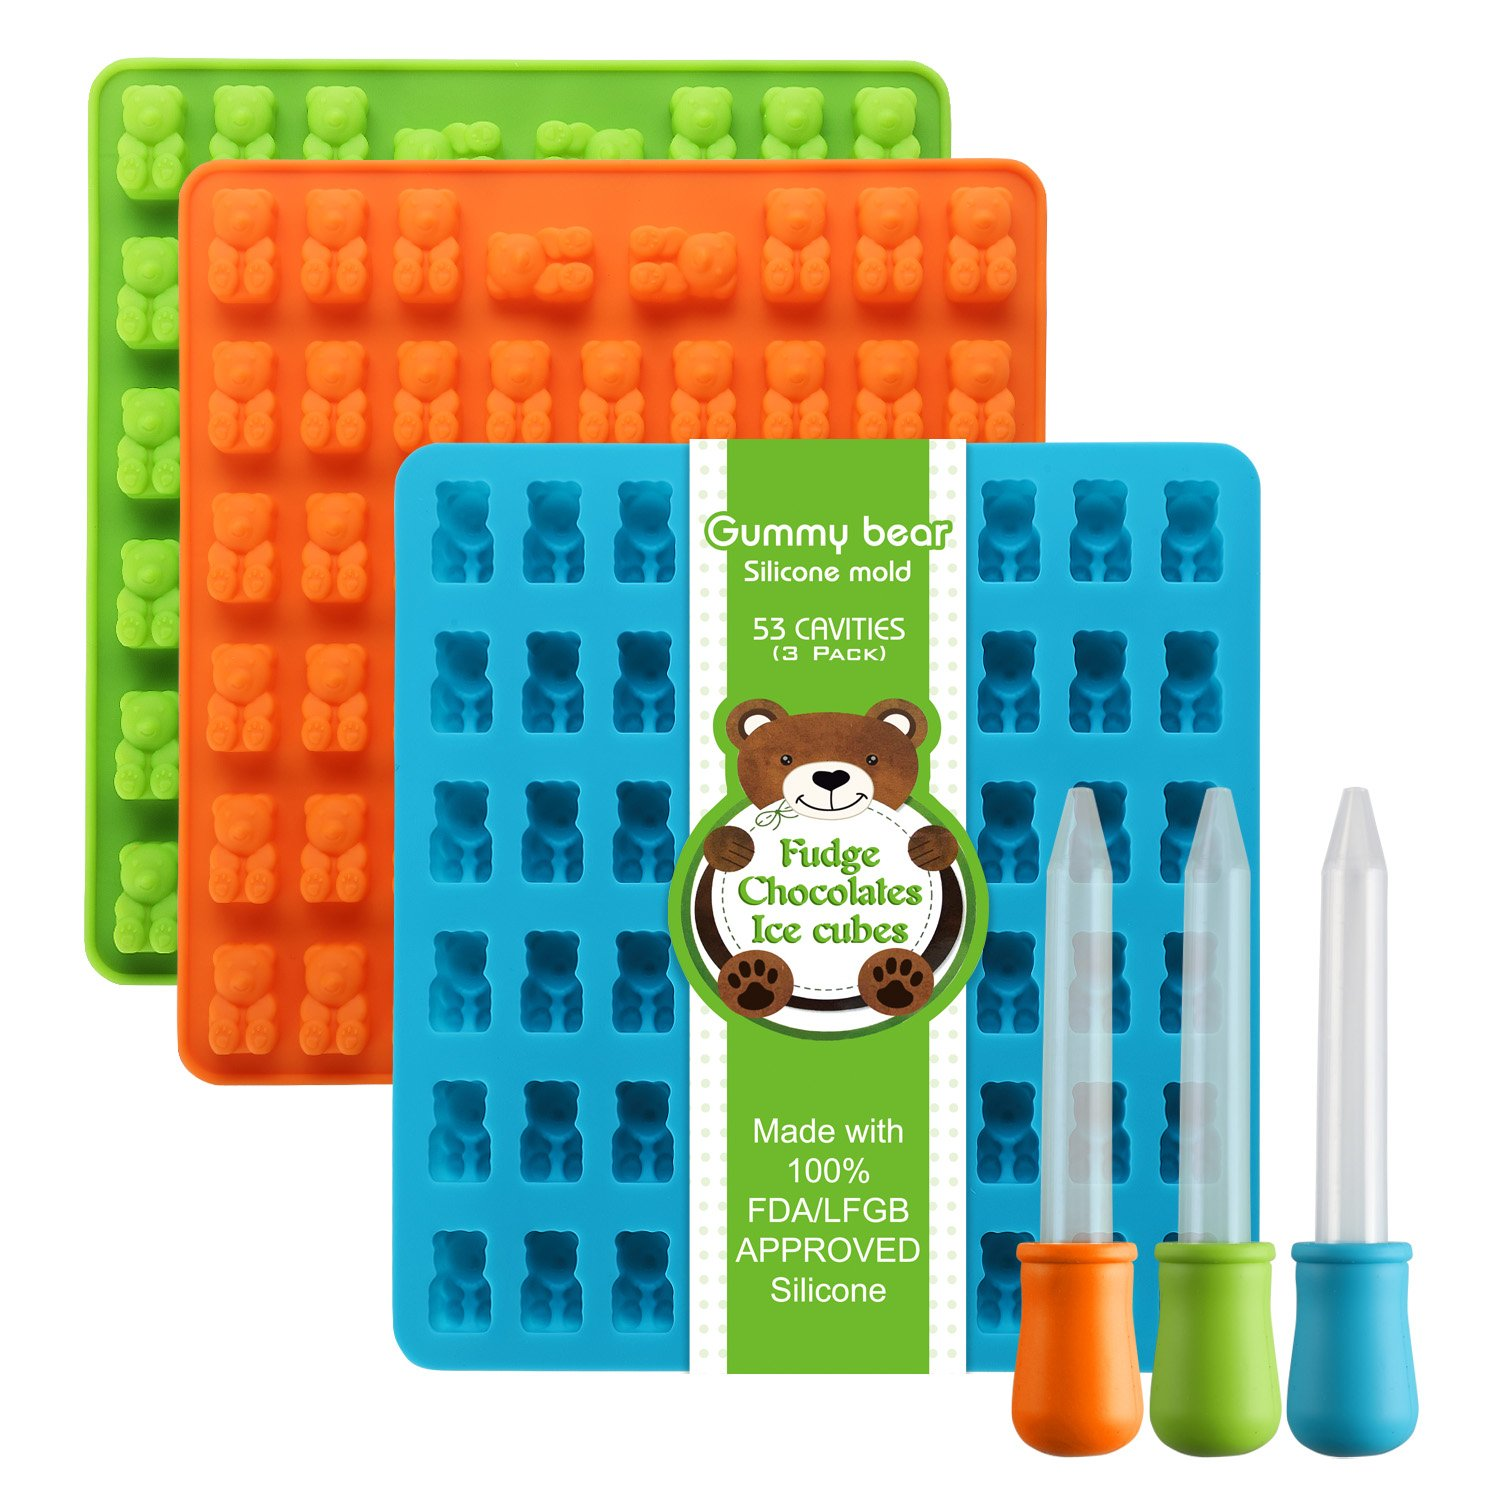 Newest Generation - 3 Pack Silicone Gummy Bear Molds 53 Cavities, 3 Bonus Droppers Perfect for Mints Chocolates Fudge Ice Cubes, BPA Free FDA Approved ( Blue, Green, Orange) by Lizber Global Vista bear-mold-3